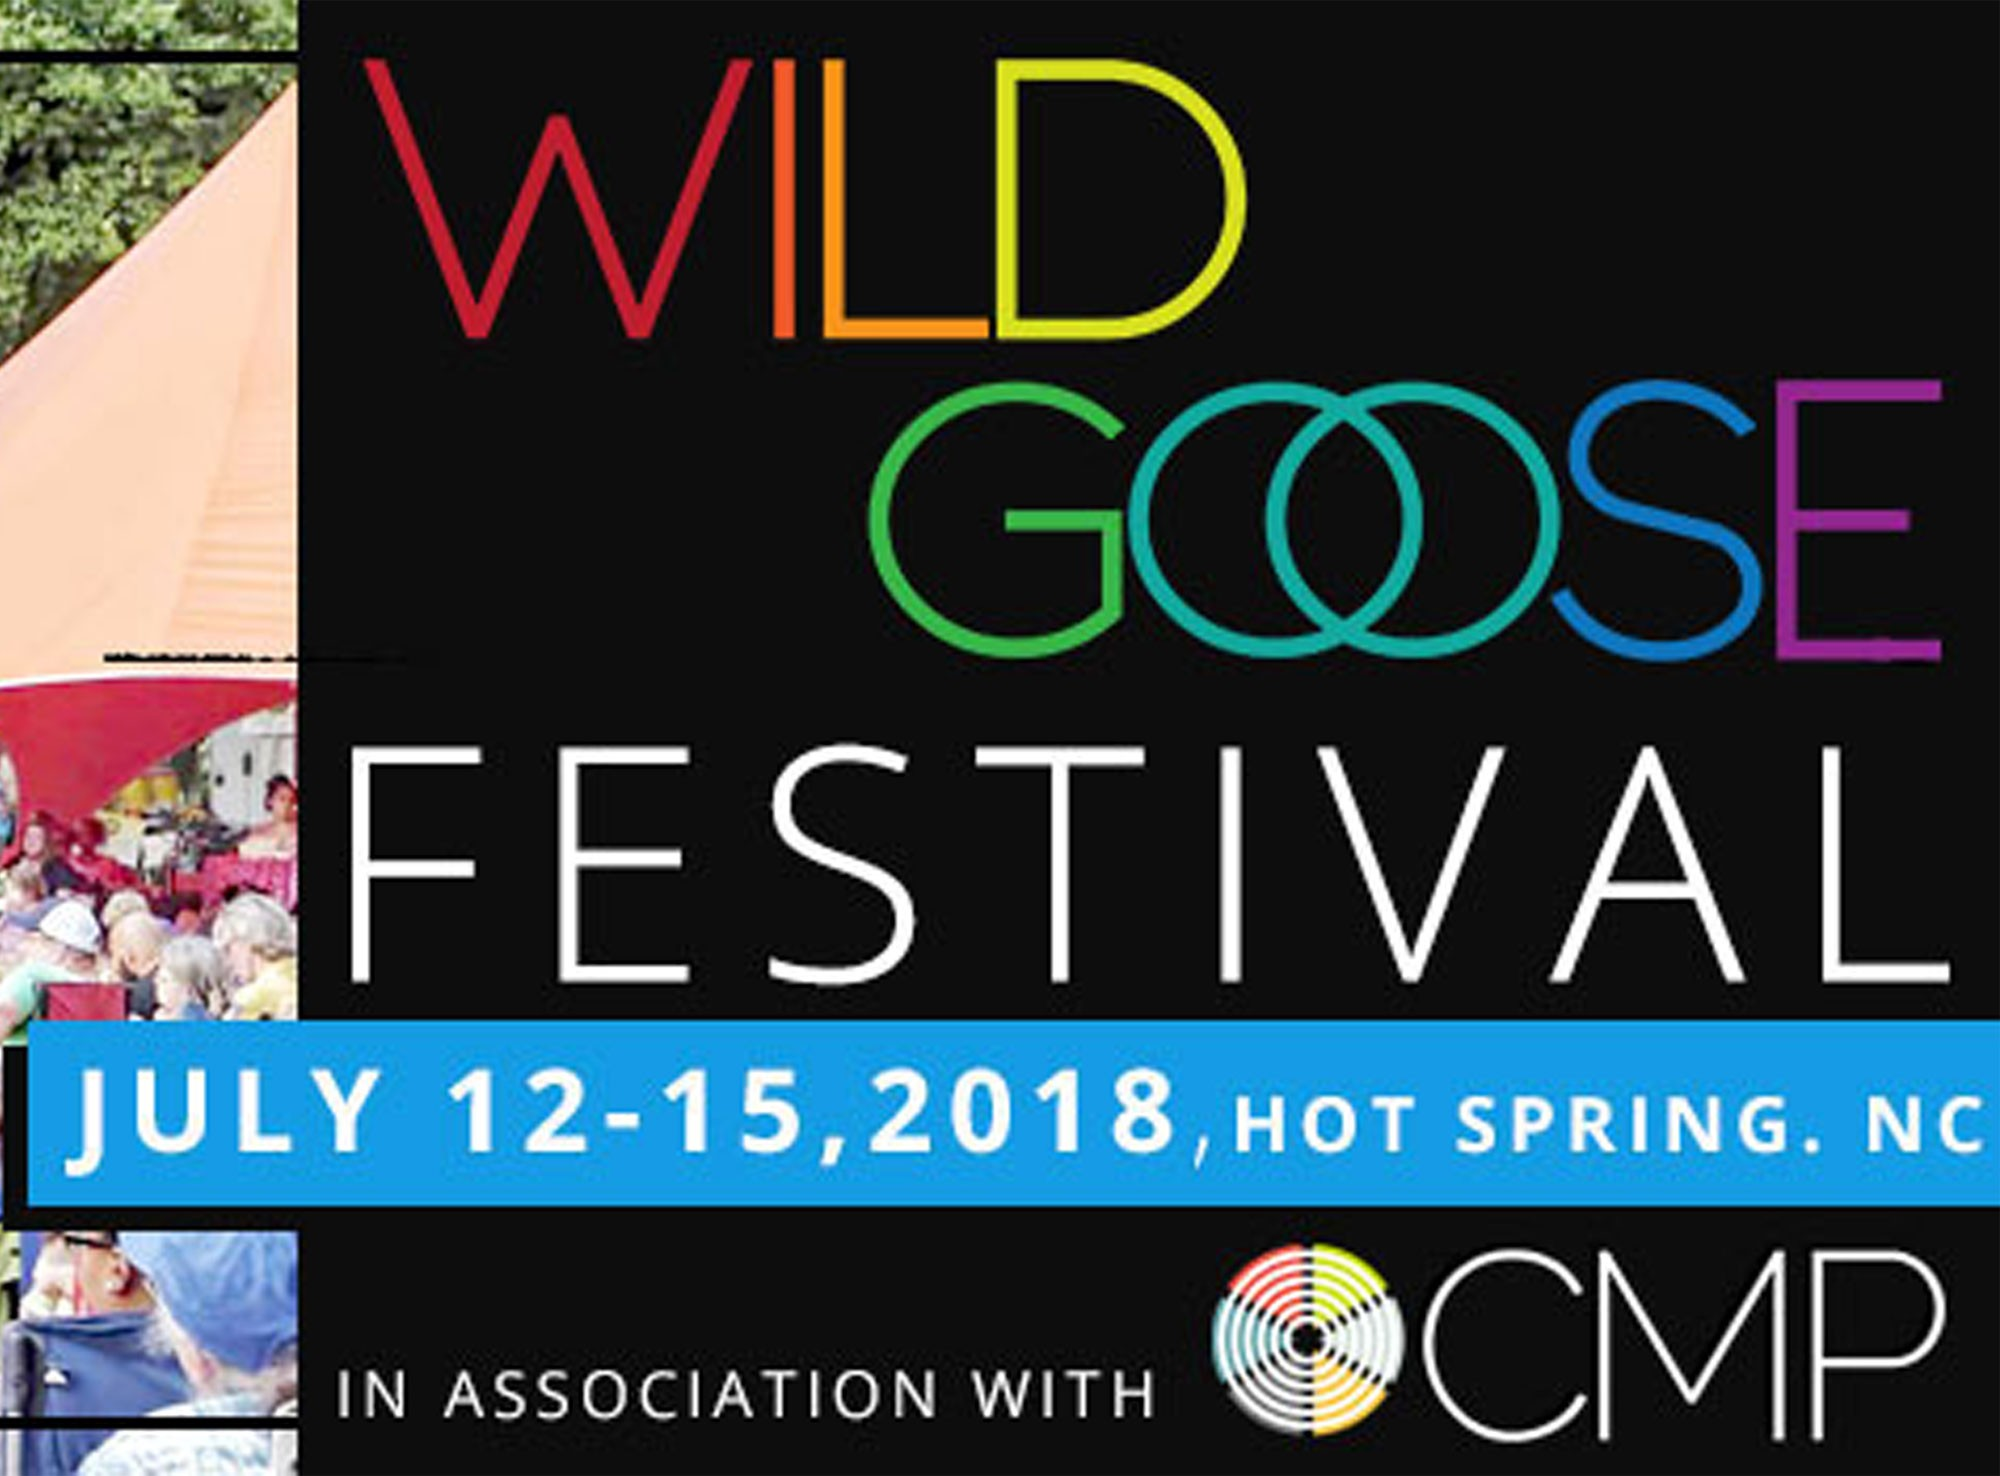 Wild Goose Festival Package